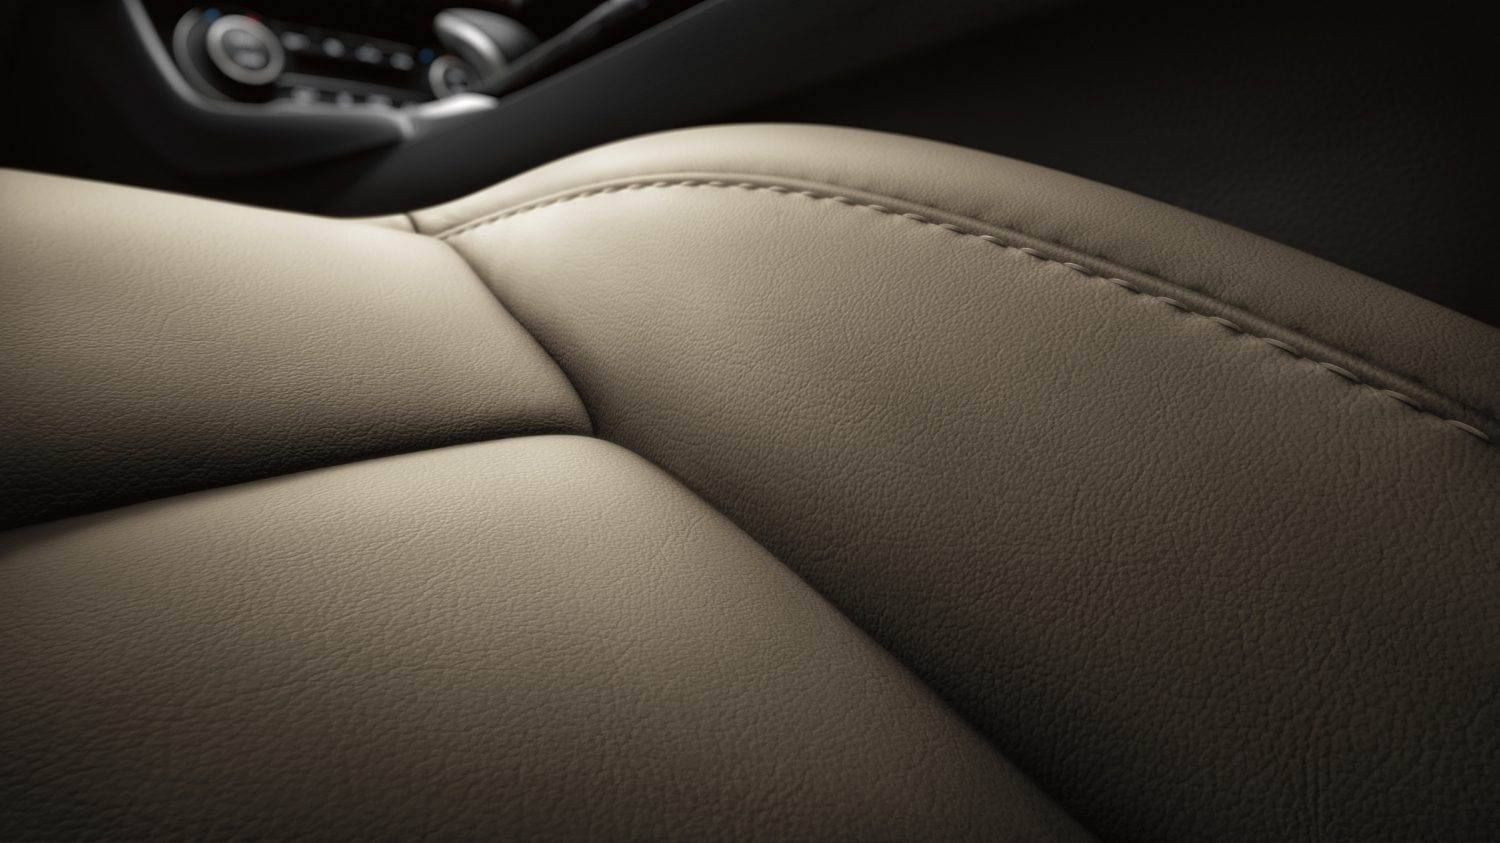 2018 INFINITI Q30 Crossover Nappa Leather Details